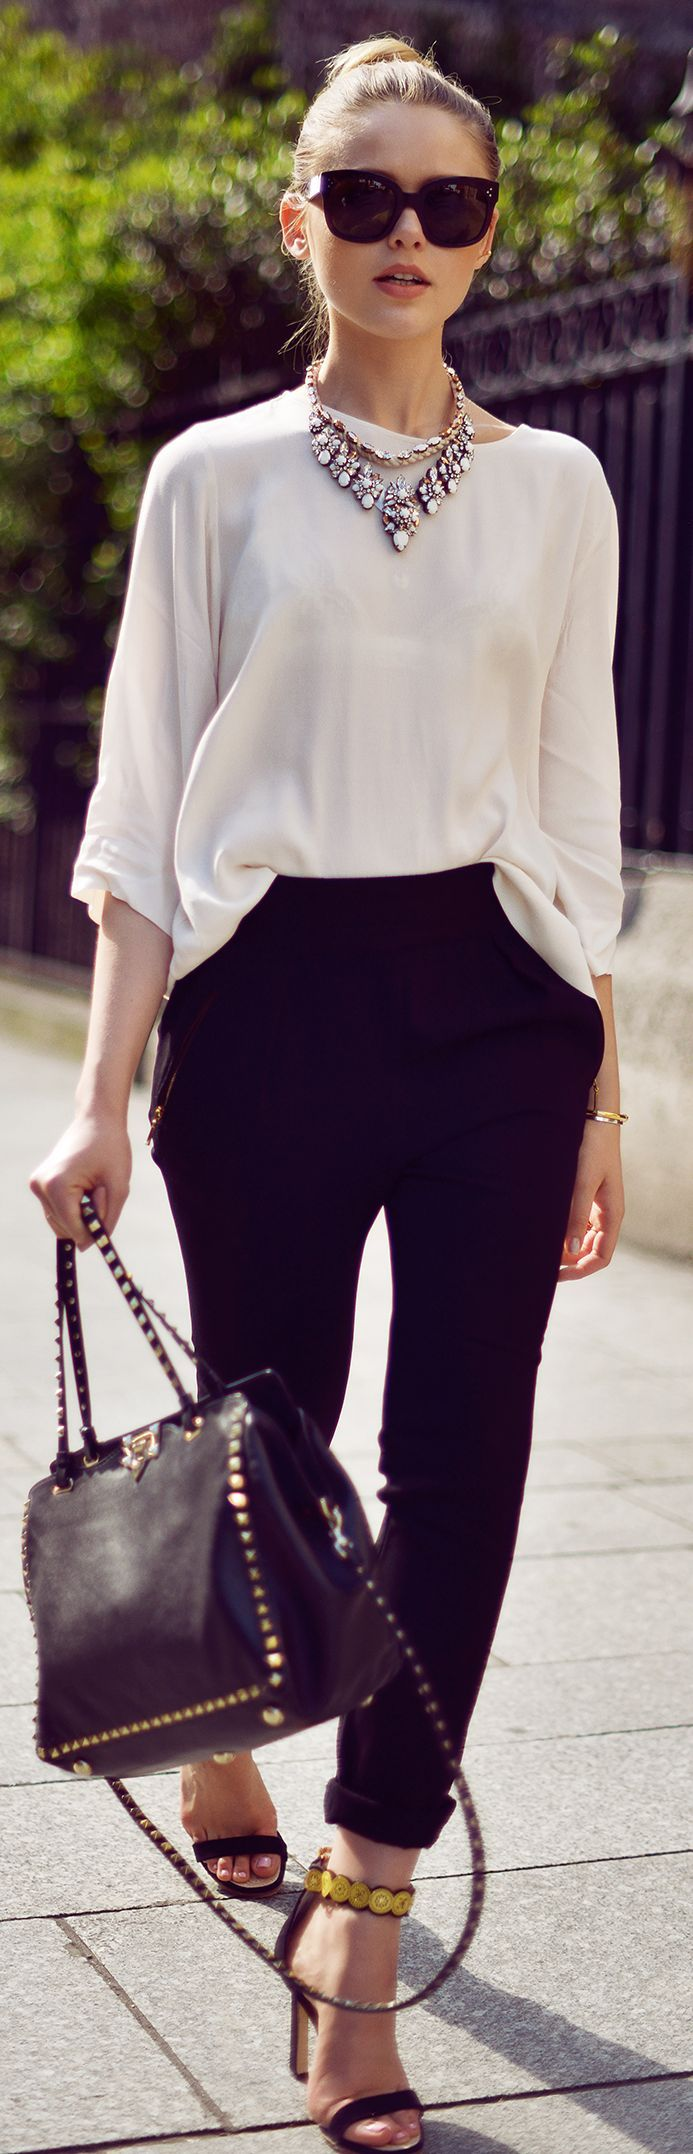 Simple and chic! This outfit has great balance, looks polished and suits my minimal style aesthetic.